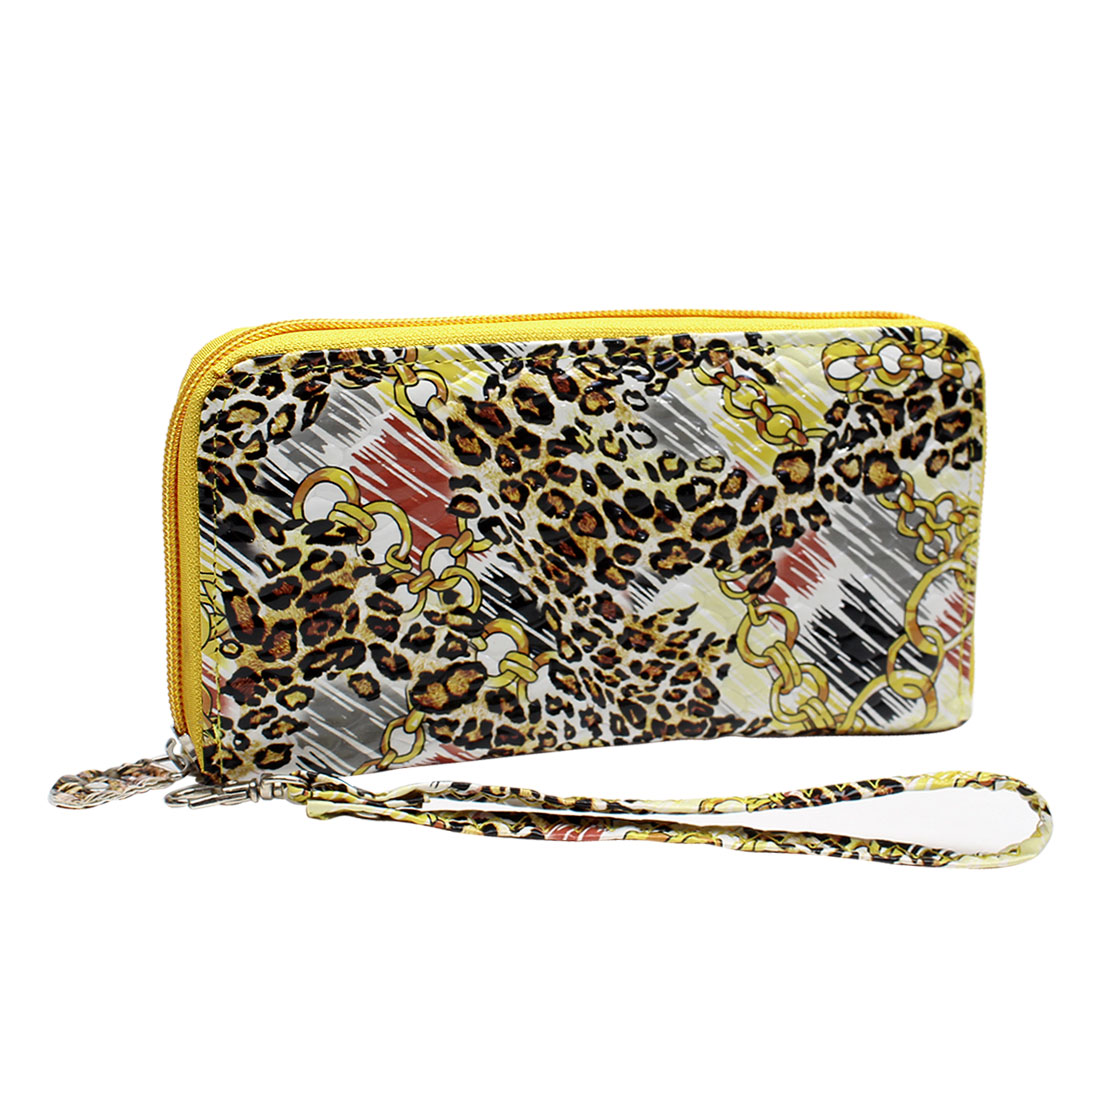 Yellow Leopard Pattern 4 Compartments Zipper Closure Handbag Purse for Lady